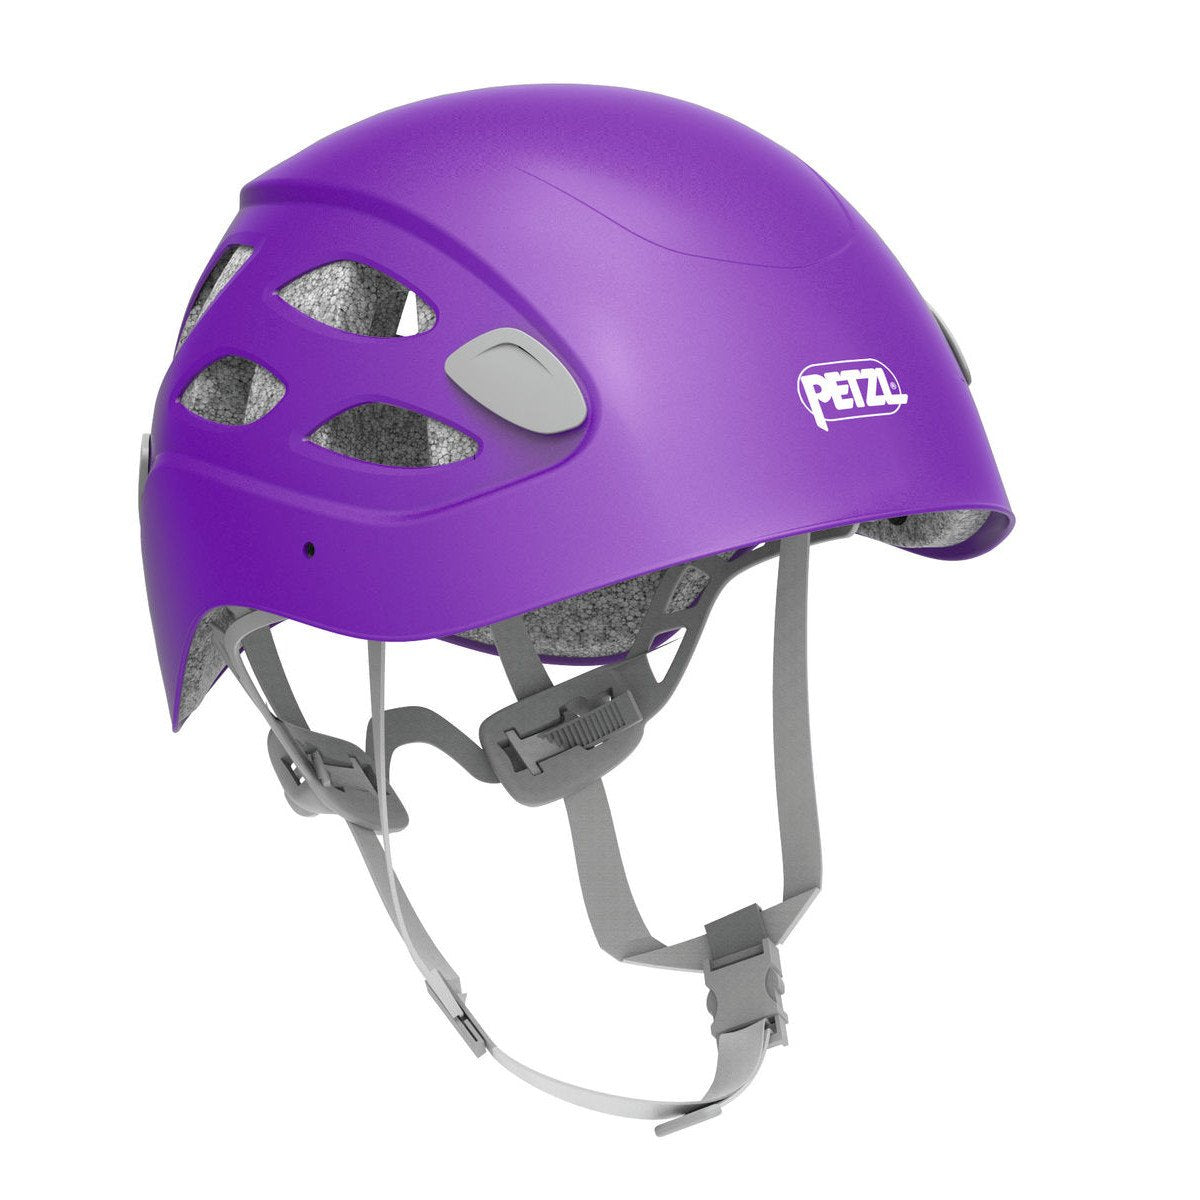 Petzl Borea multi-sport helmet, front/side view in purple colour